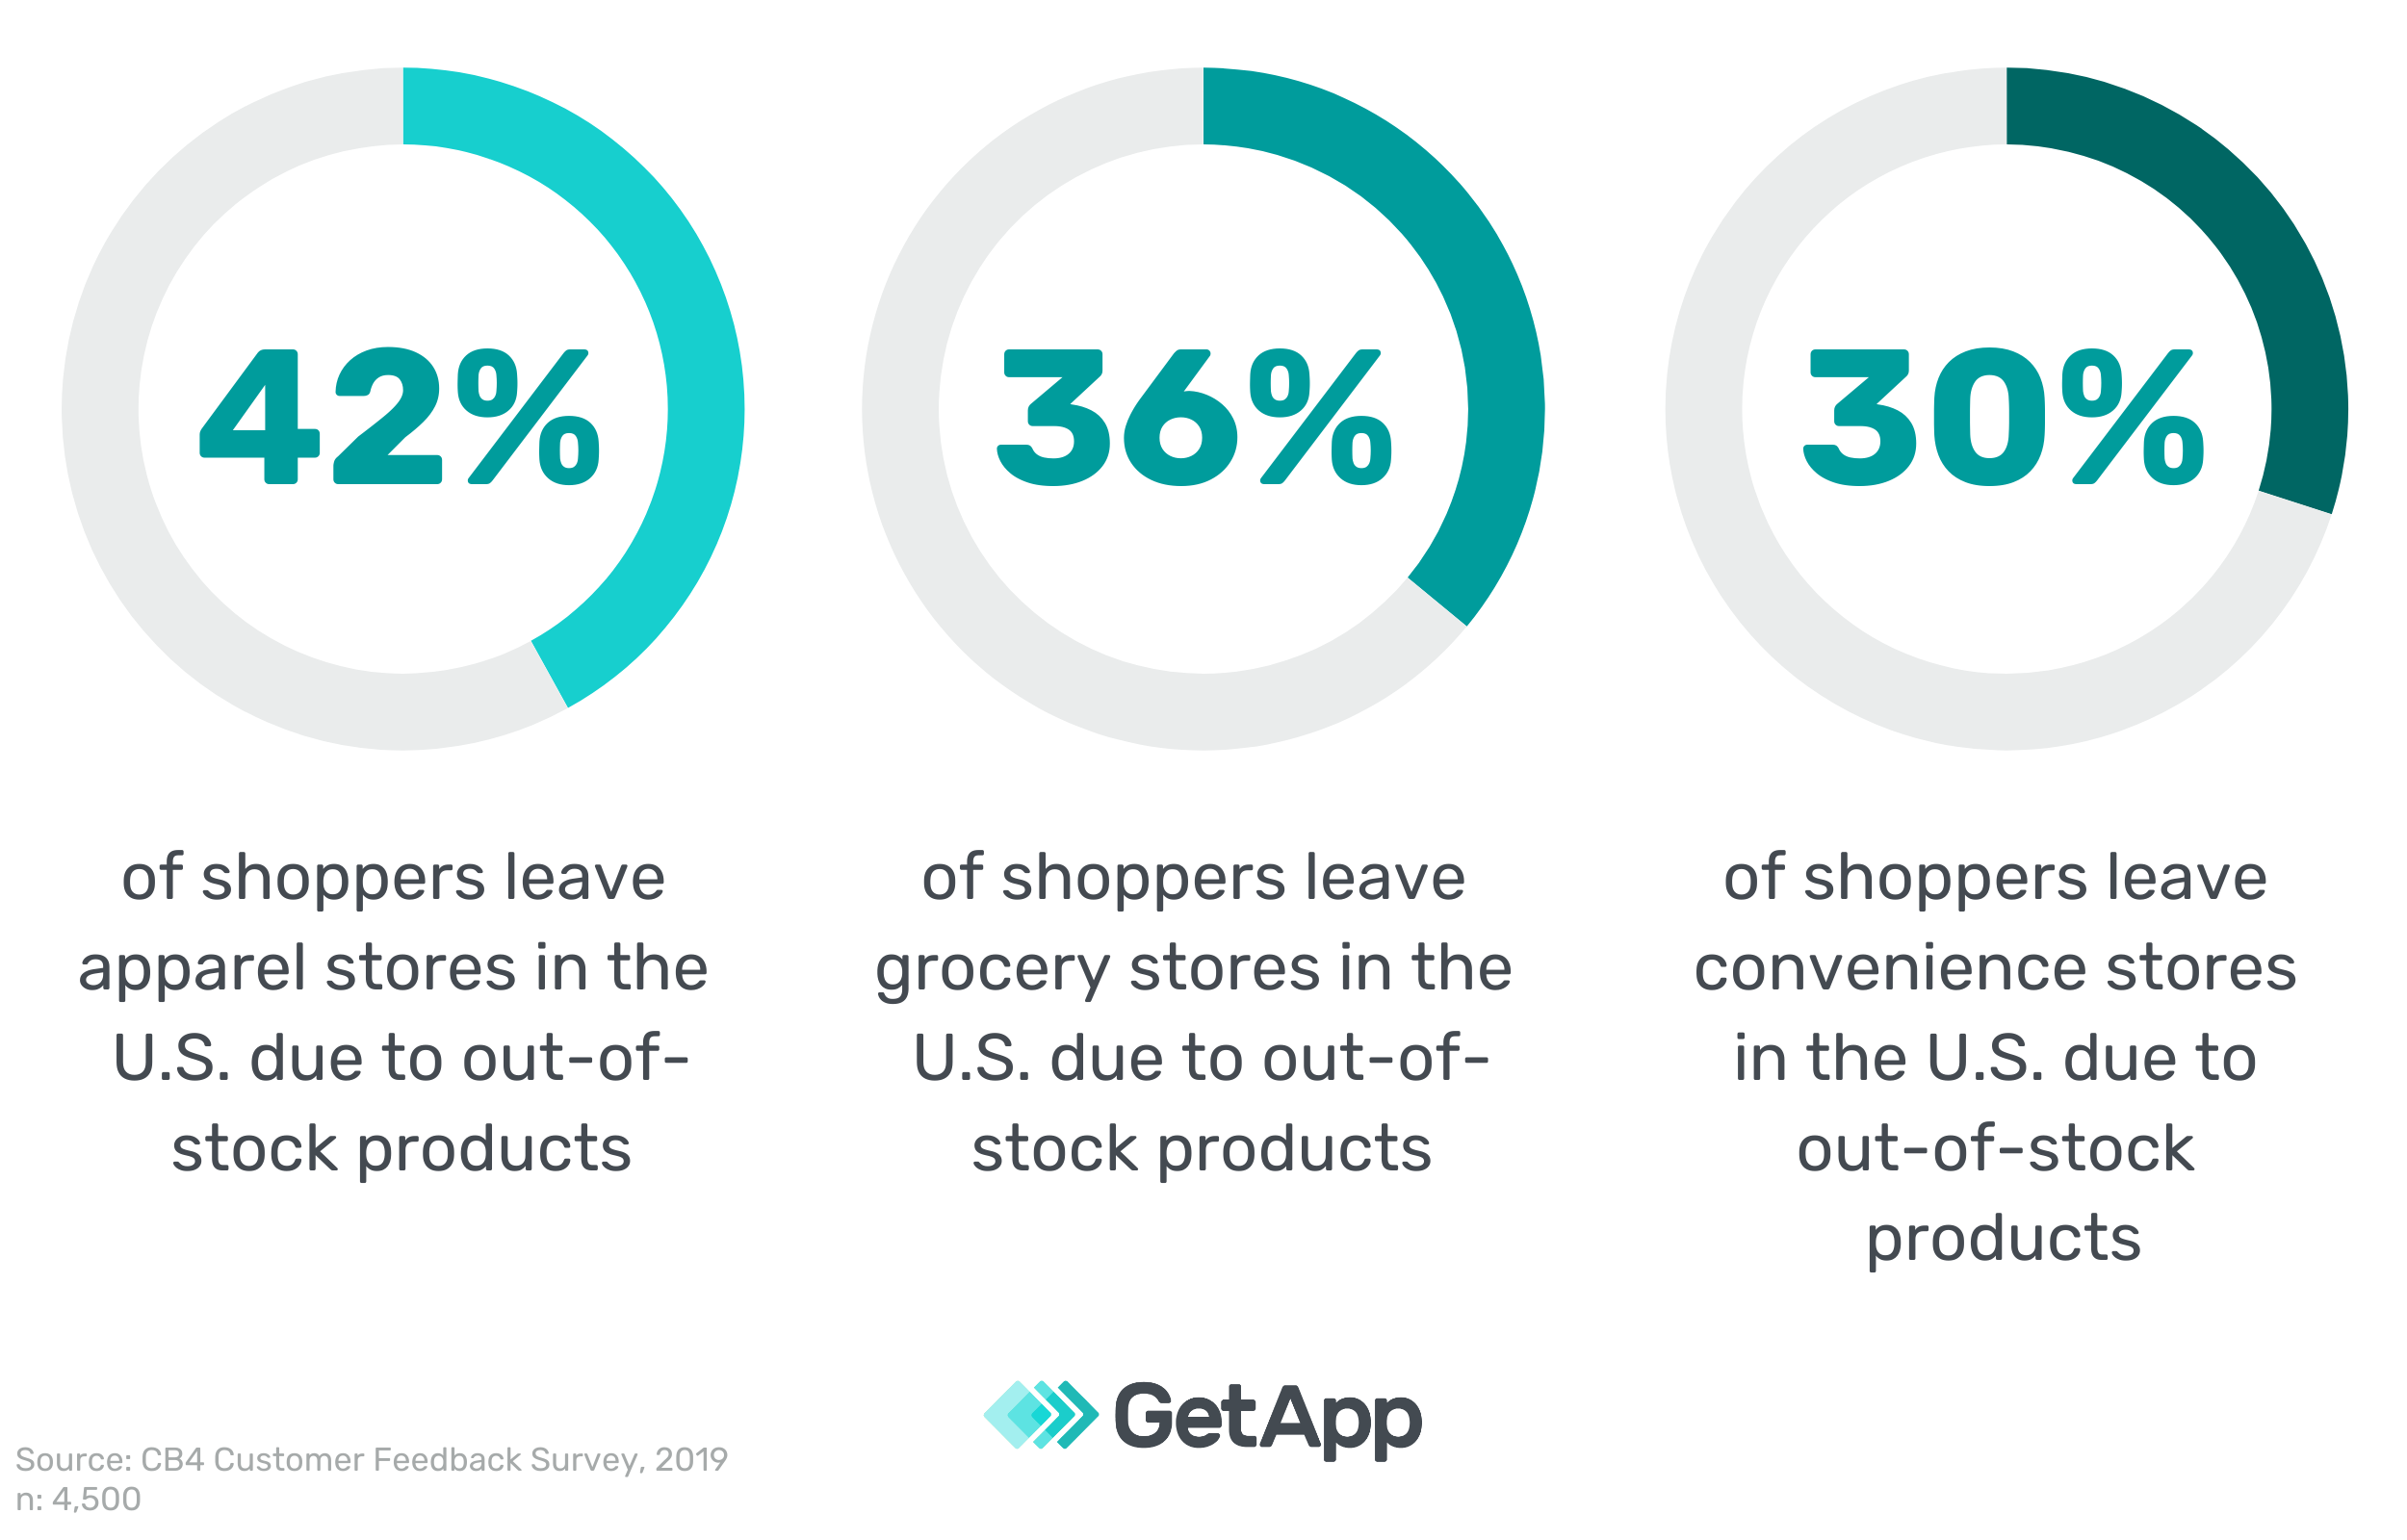 Percentage of shoppers exiting retail stores in the U.S. due to out-of-stock products